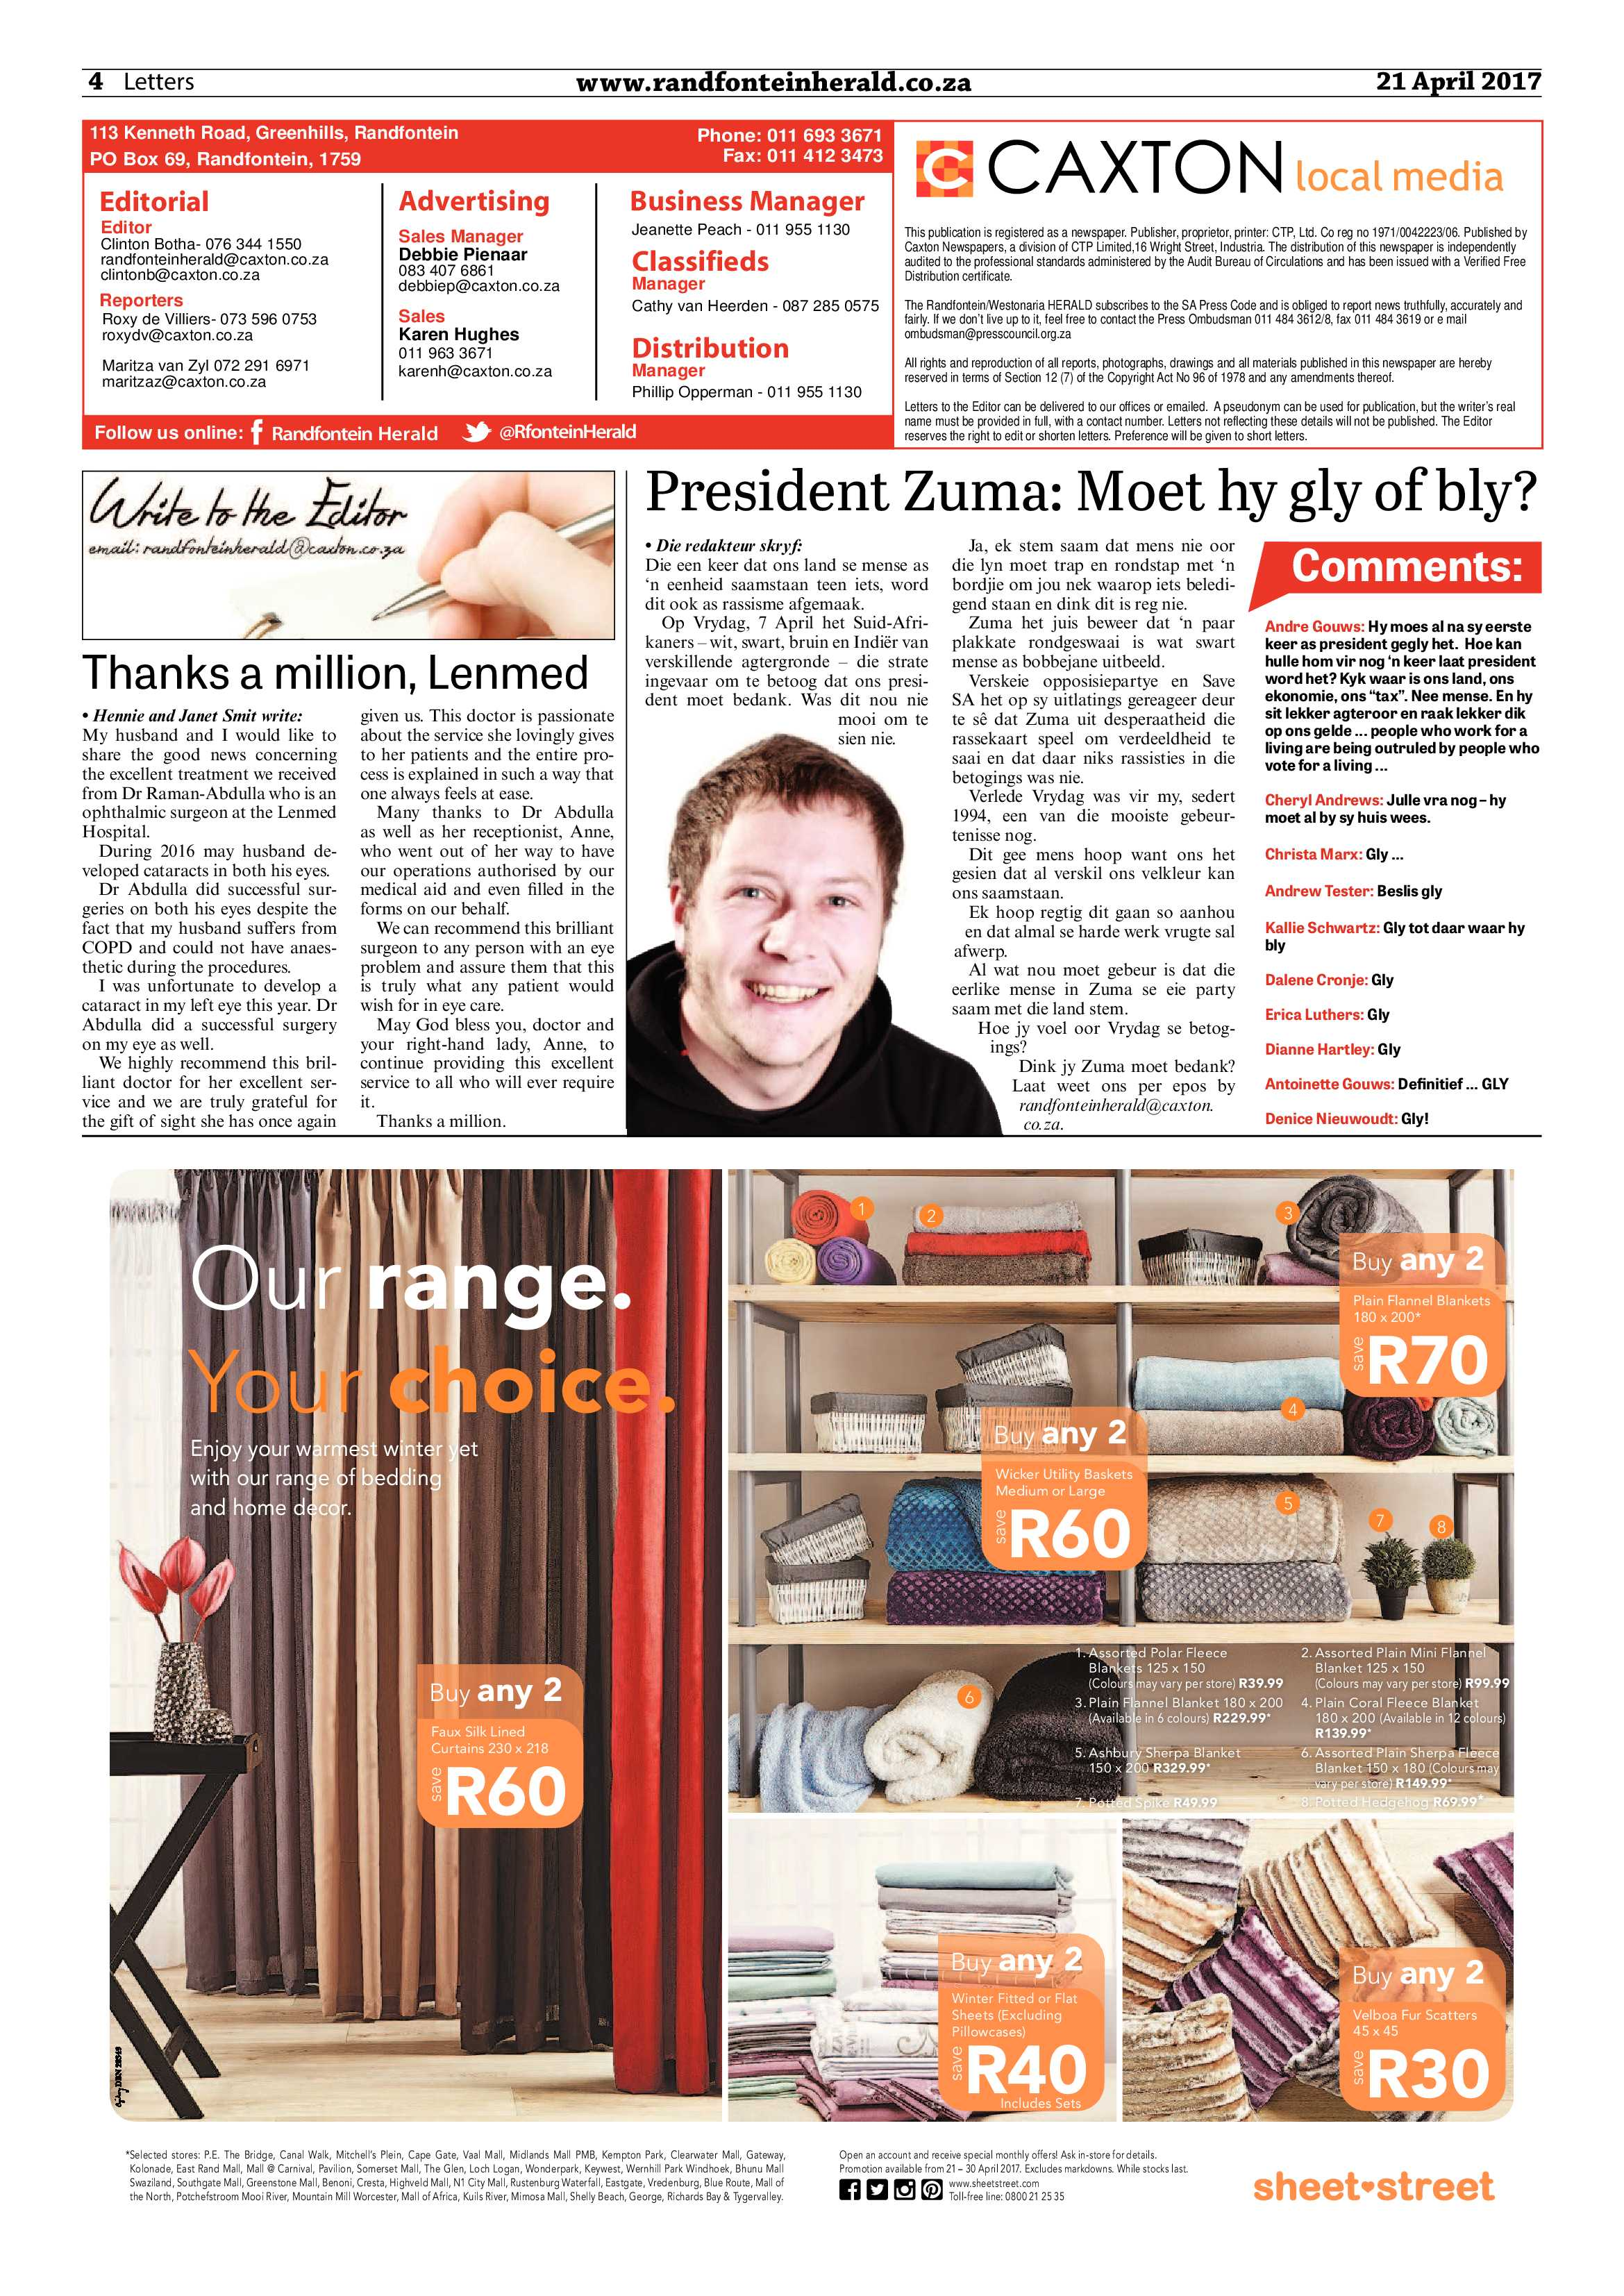 randfontein-herald-21-april-2017-epapers-page-4